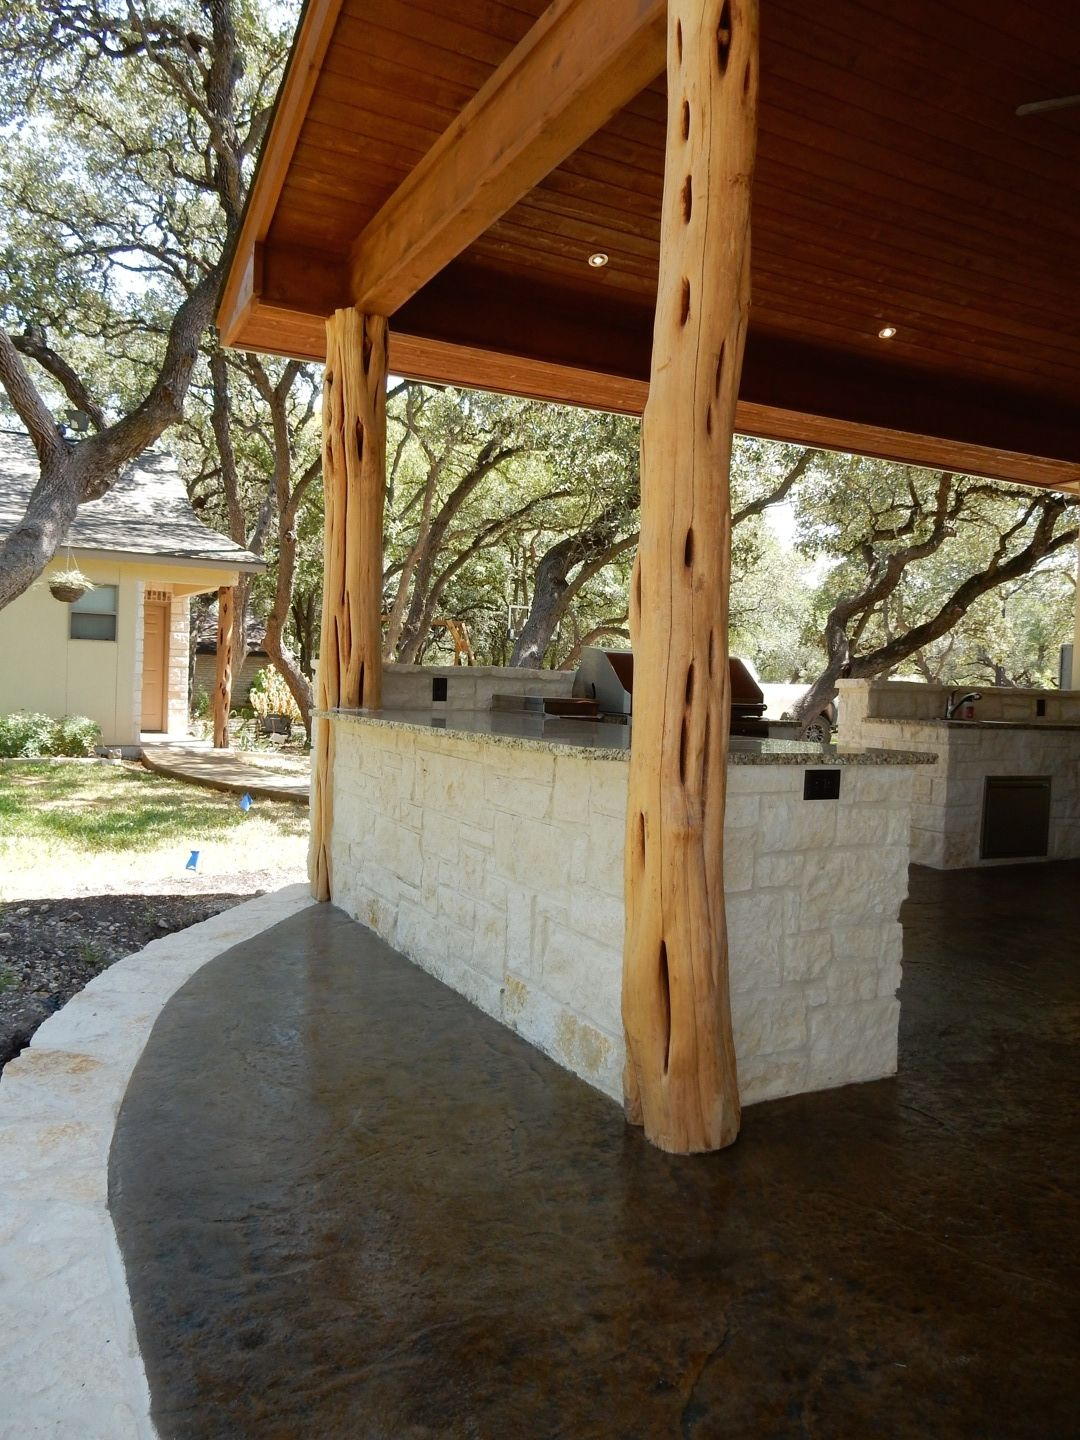 Rustic Patio In San Antonio Texas Patio Is A Double Gable Covered Patio With Austin Limestone Outdoor Kitchen And Fire Pit Rustic Patio Patio Limestone Patio